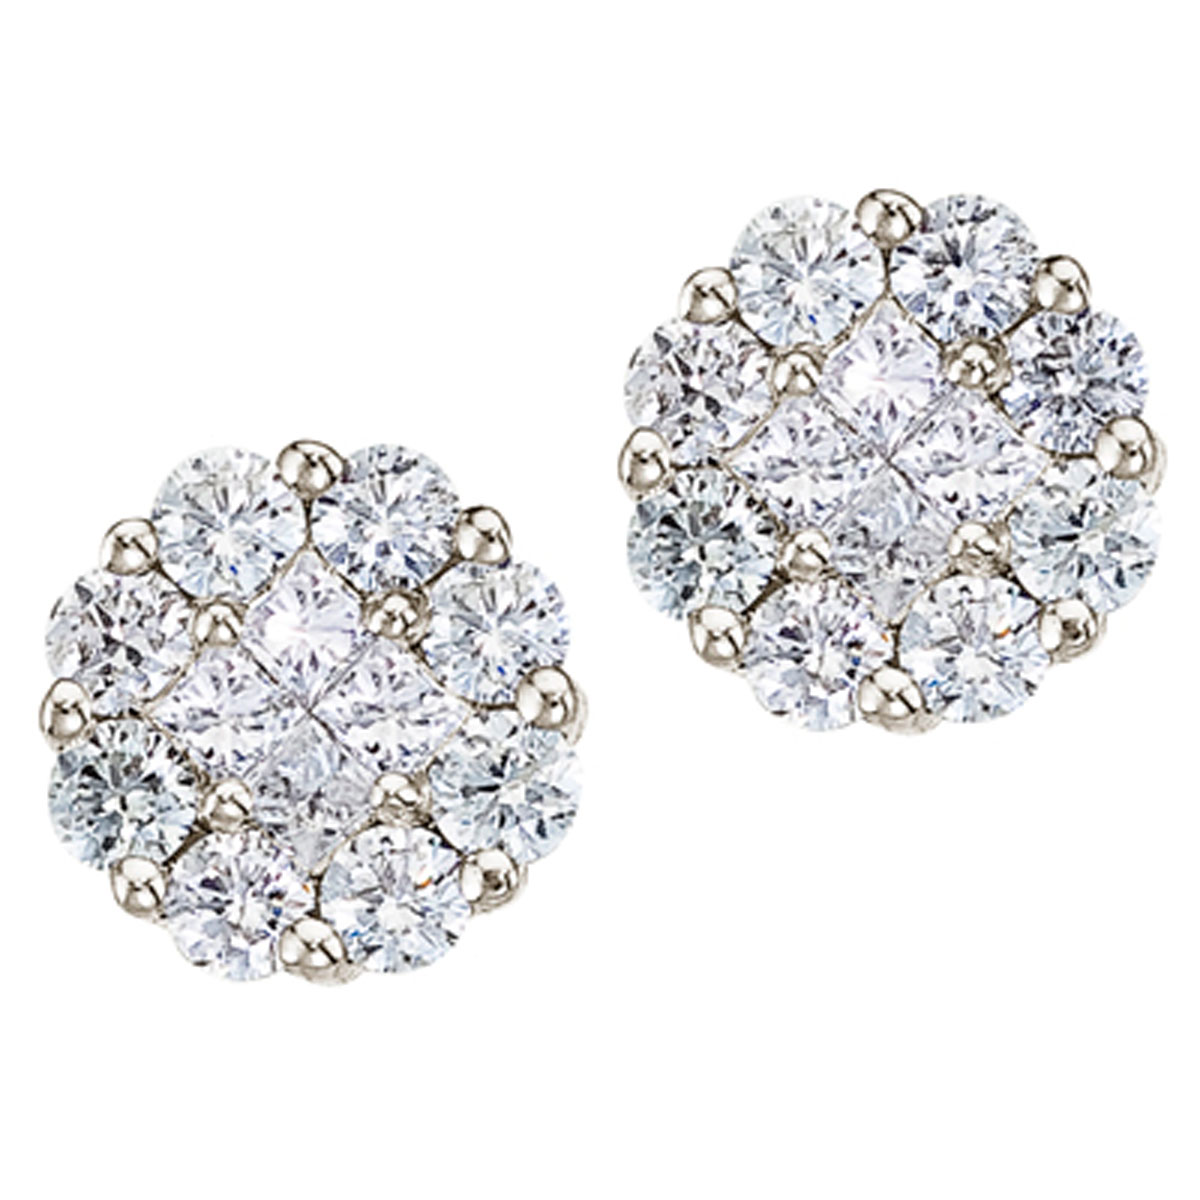 Gorgeous 14k white gold earrings with a full carat of shimmering genuine diamonds. Clustaires giv...